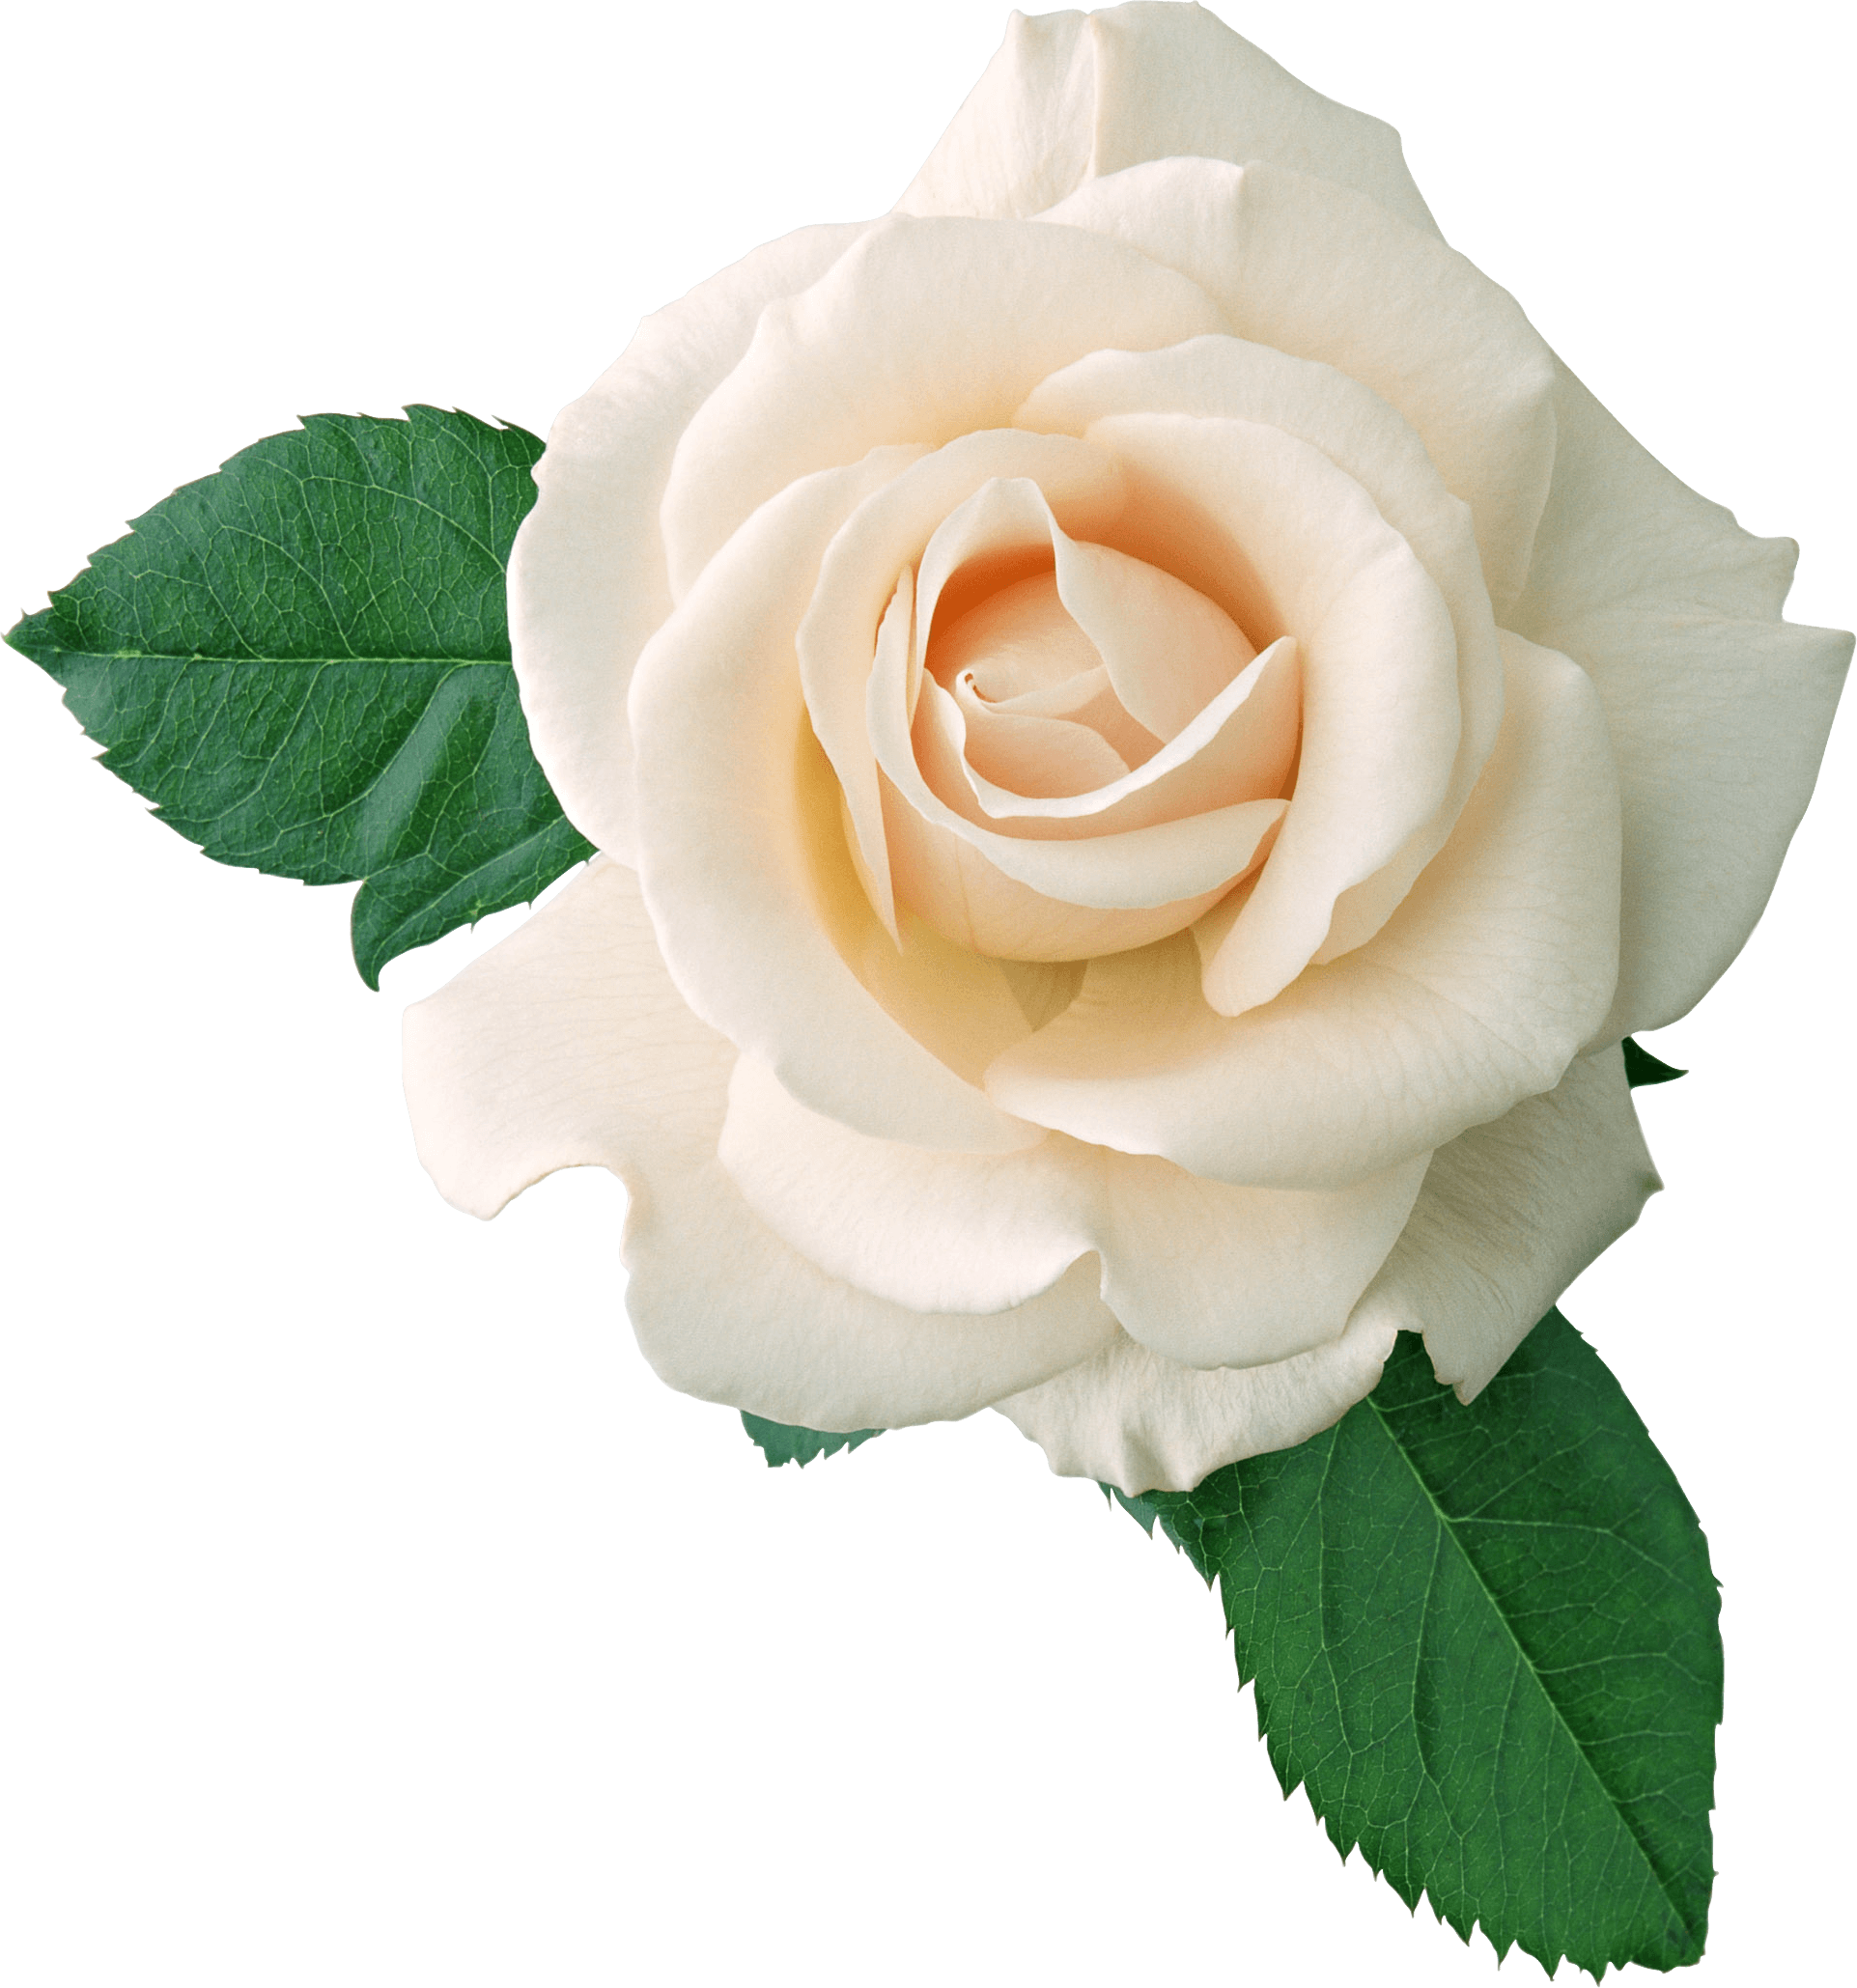 White roses png. Rose on leaves transparent